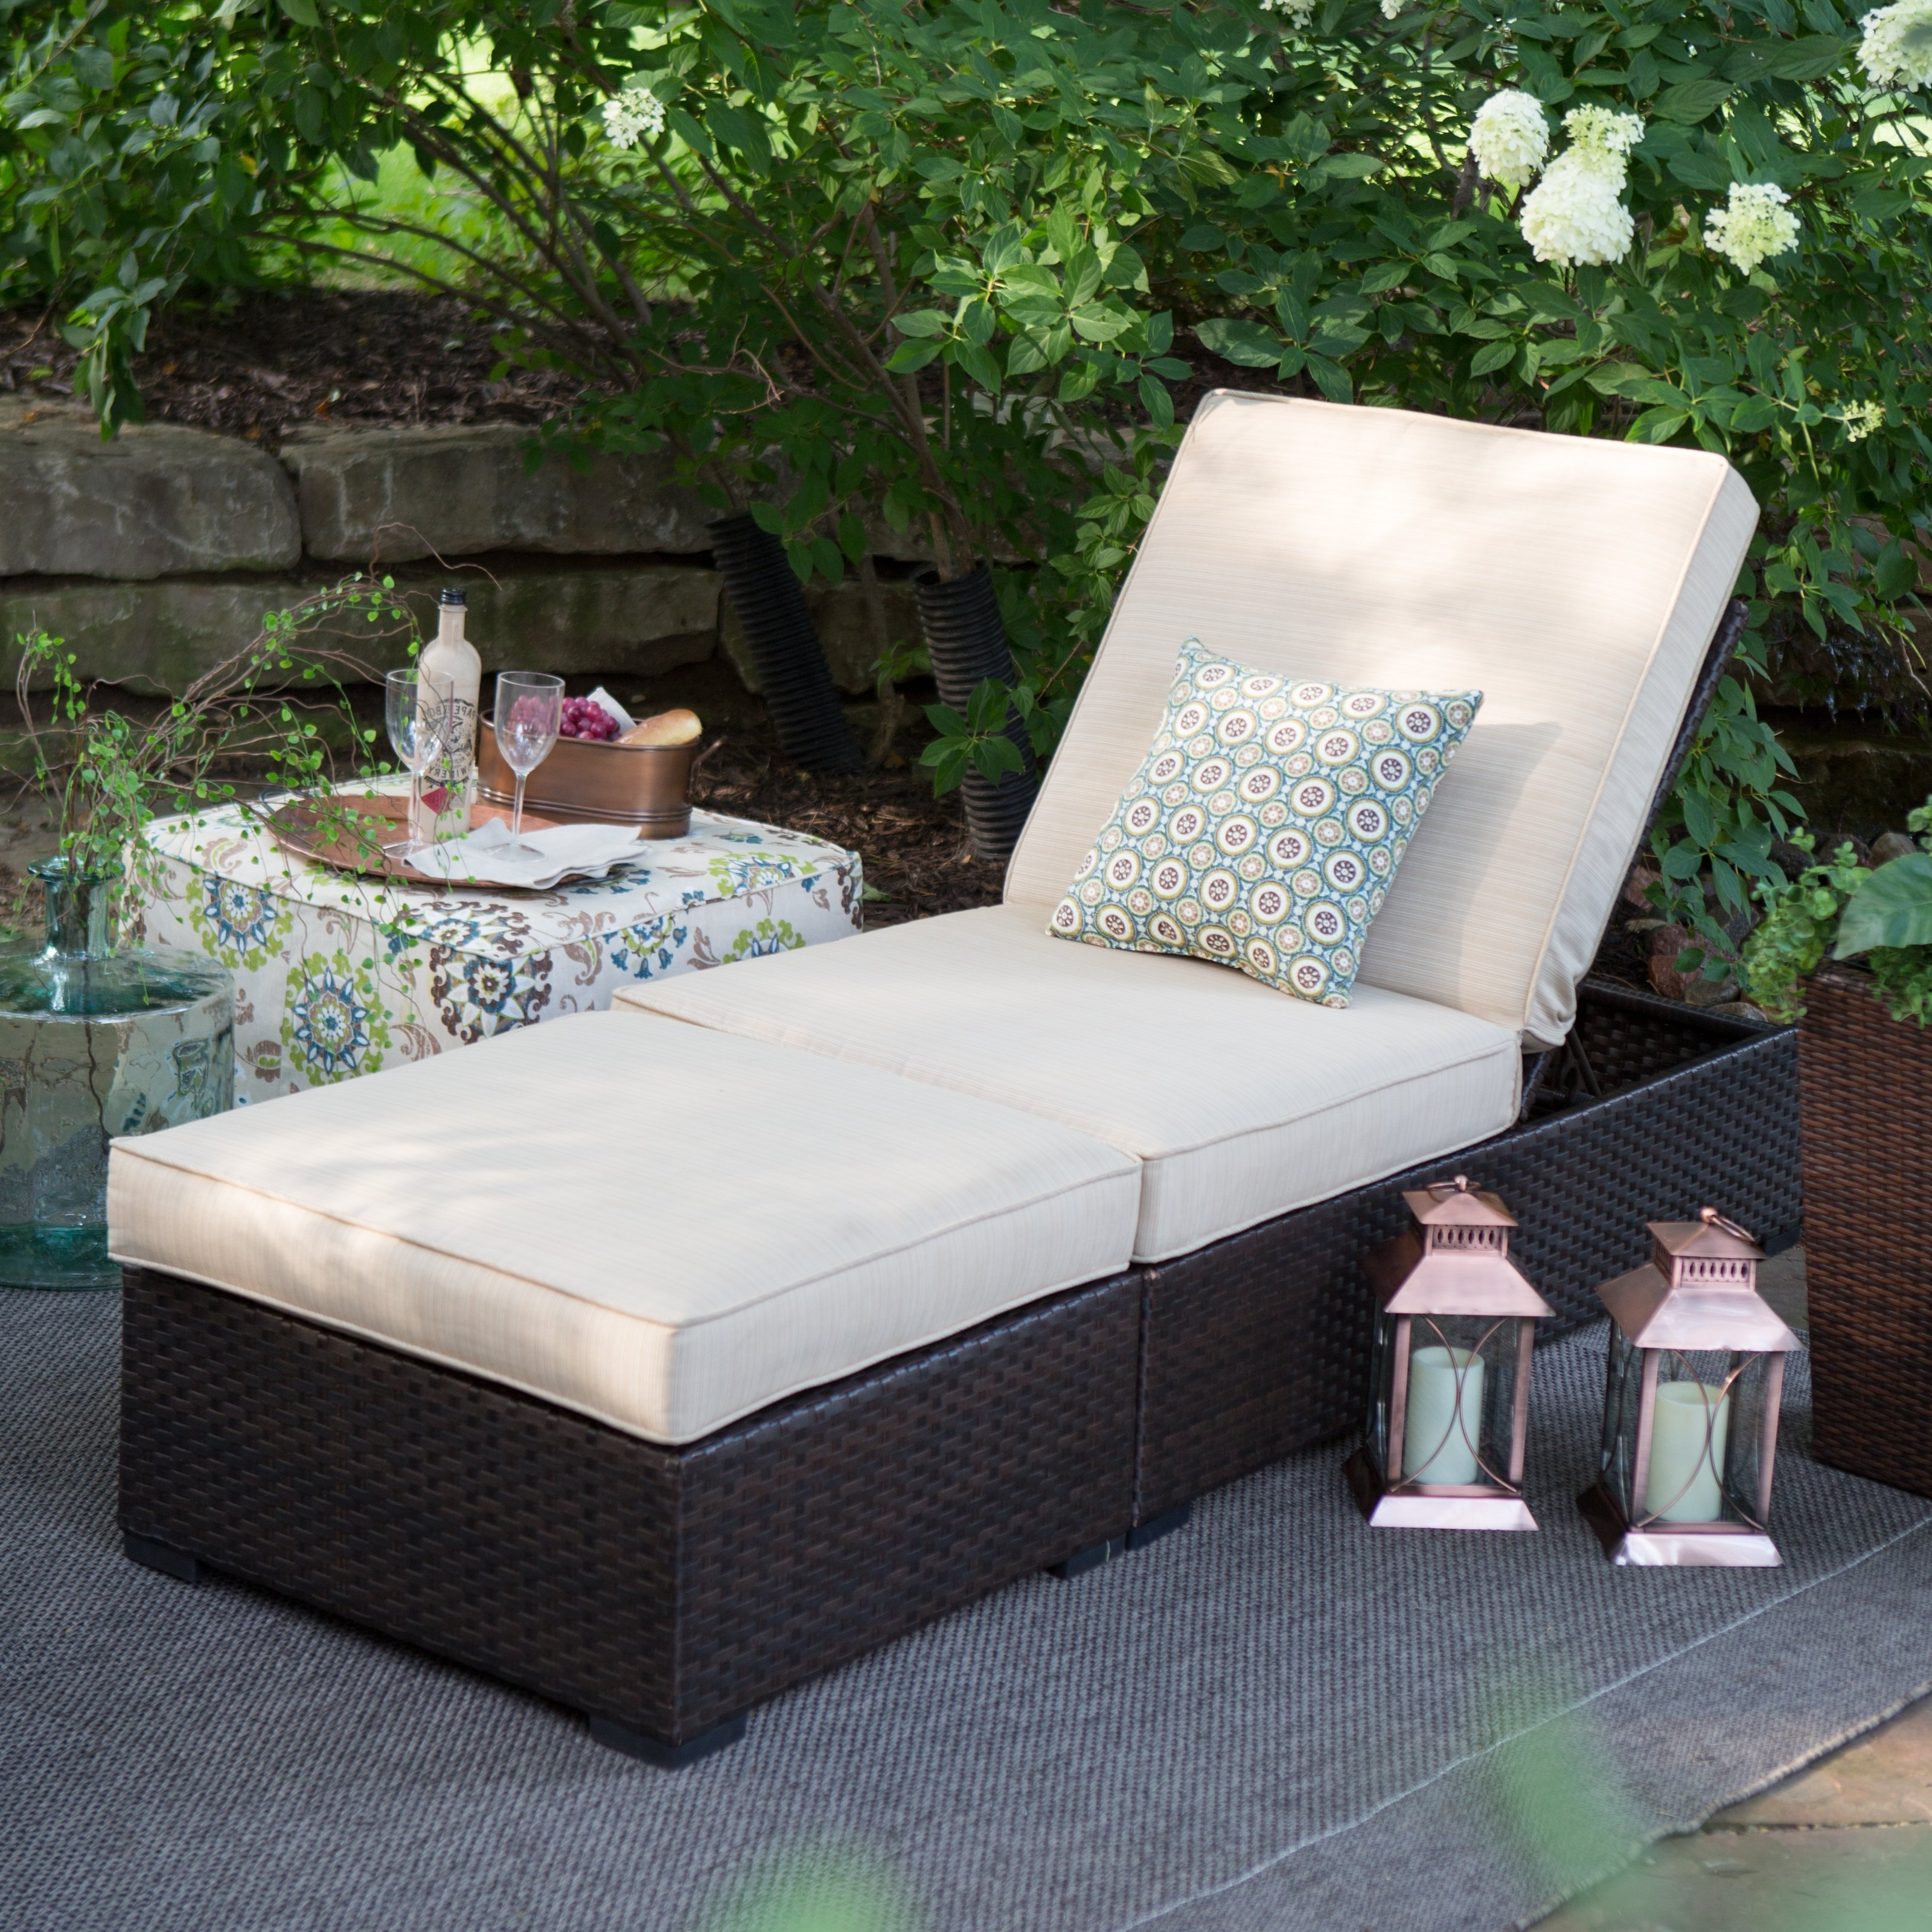 Recent Belham Living Marcella Wide Wicker Chaise Lounge With Ottoman Inside Wicker Outdoor Chaise Lounges (View 7 of 15)